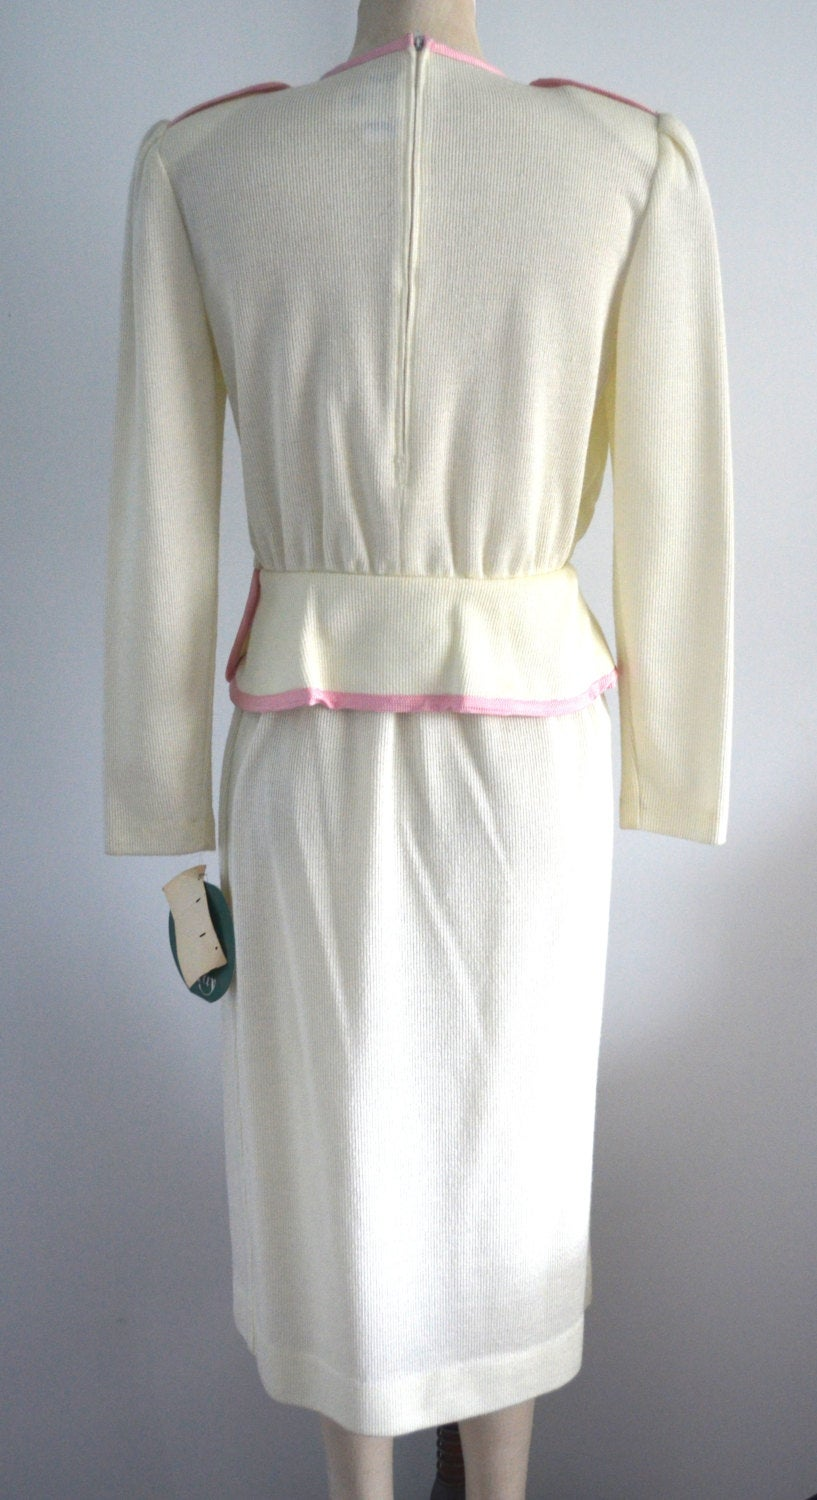 New With Tags Leslie Fay Cream Pink Knit Sweater Skirt Suit Mid Length Size 10